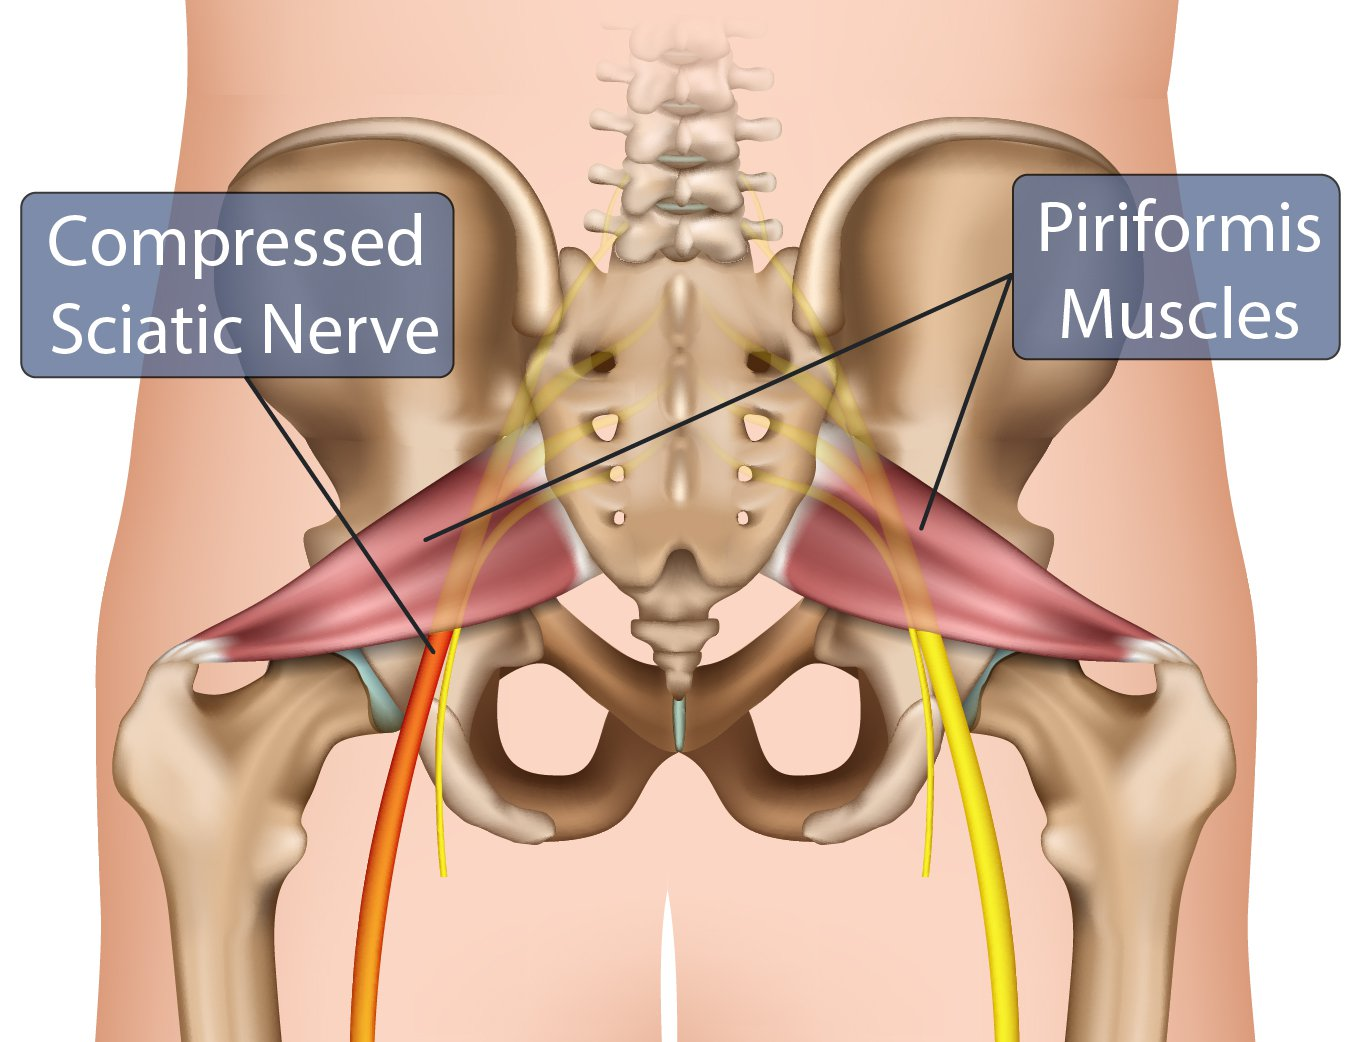 Piriformis Muscles Compressed Nerve